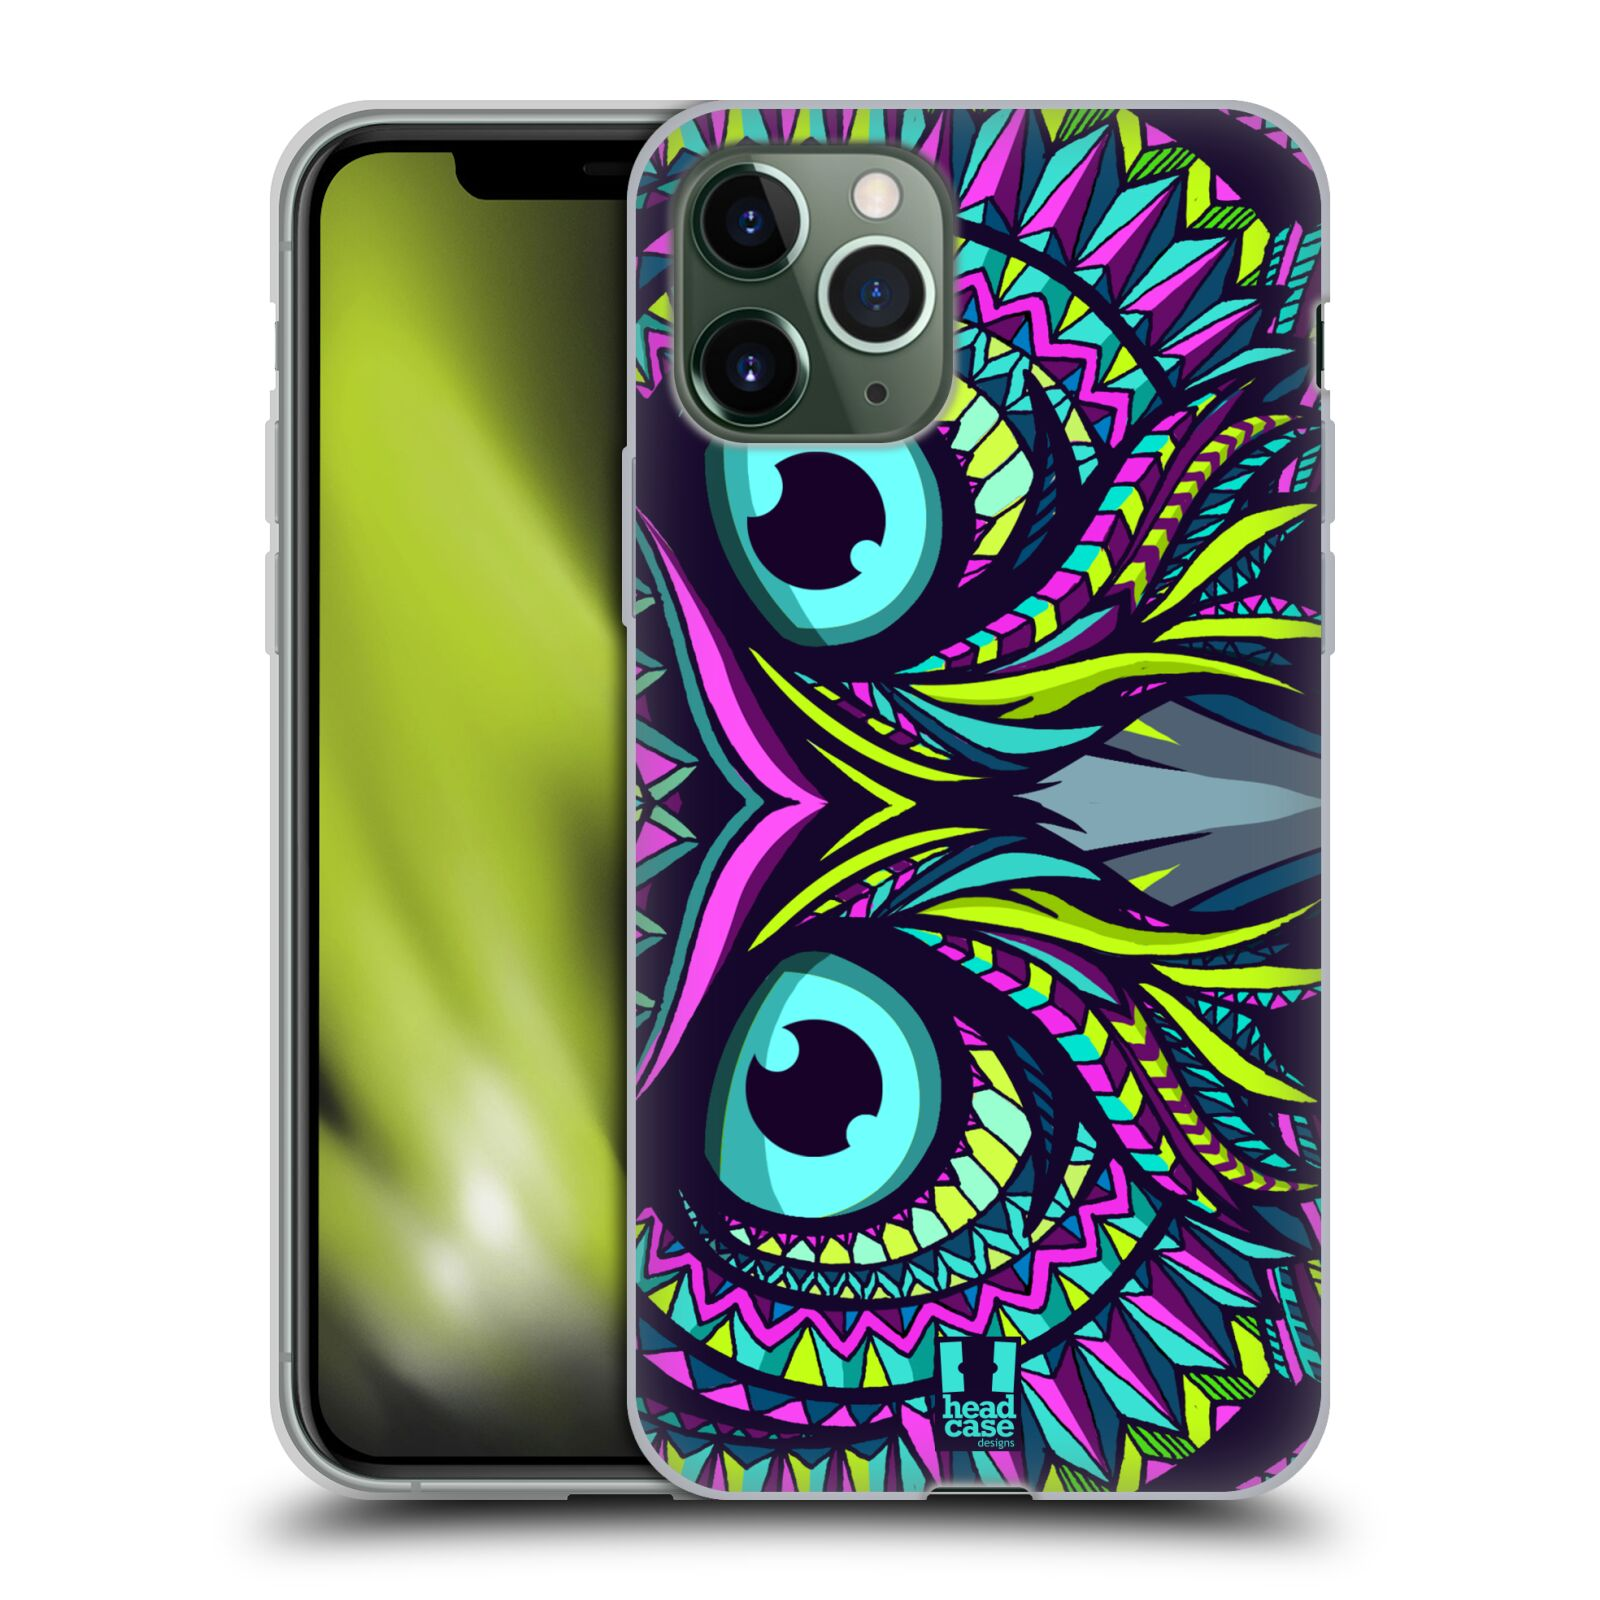 iphone 11 kryt apple , Silikonové pouzdro na mobil Apple iPhone 11 Pro - Head Case - AZTEC SOVA